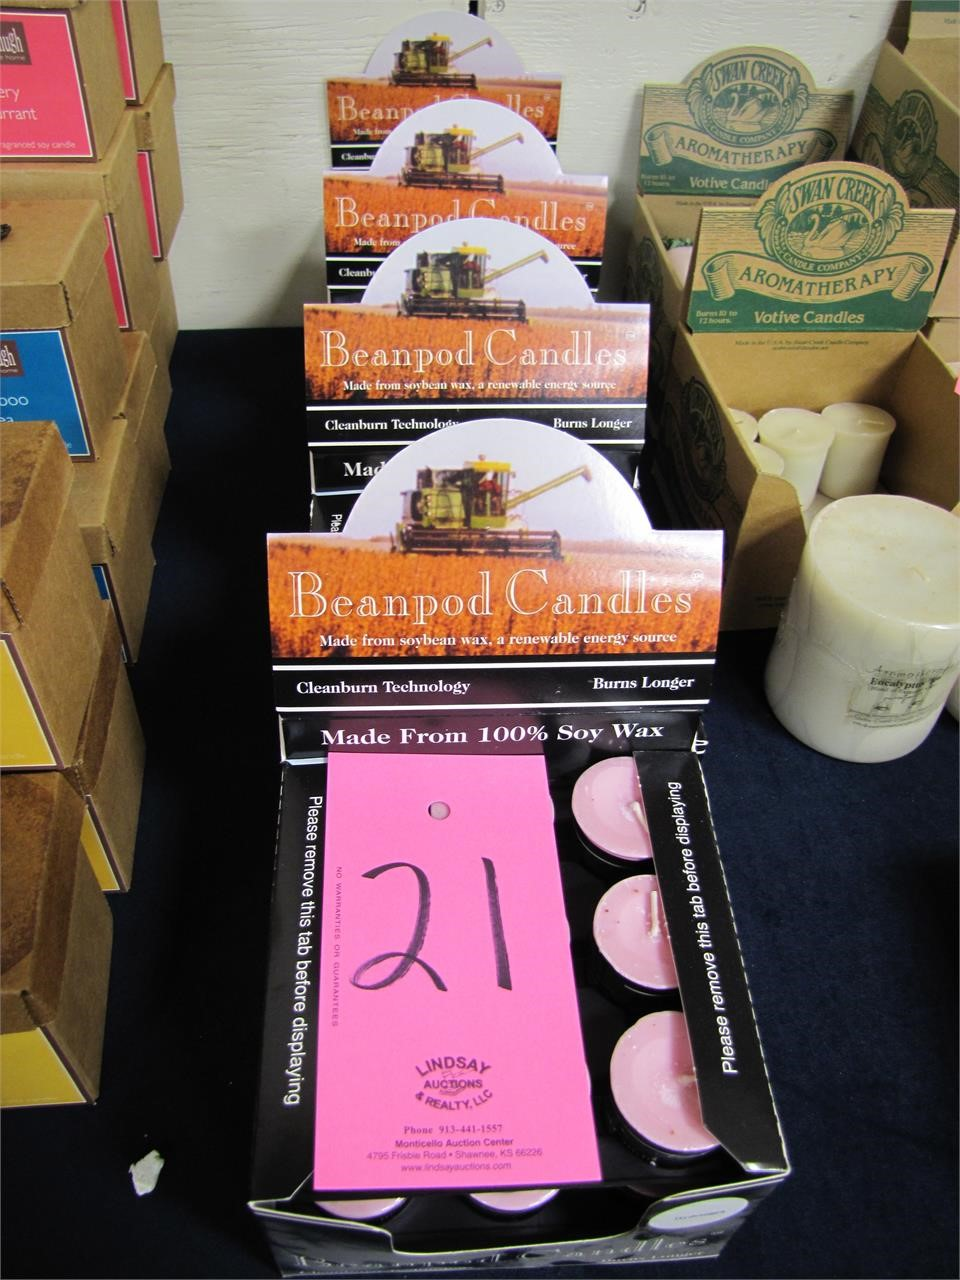 Approx 4 cases (new) Beanpod Candles: